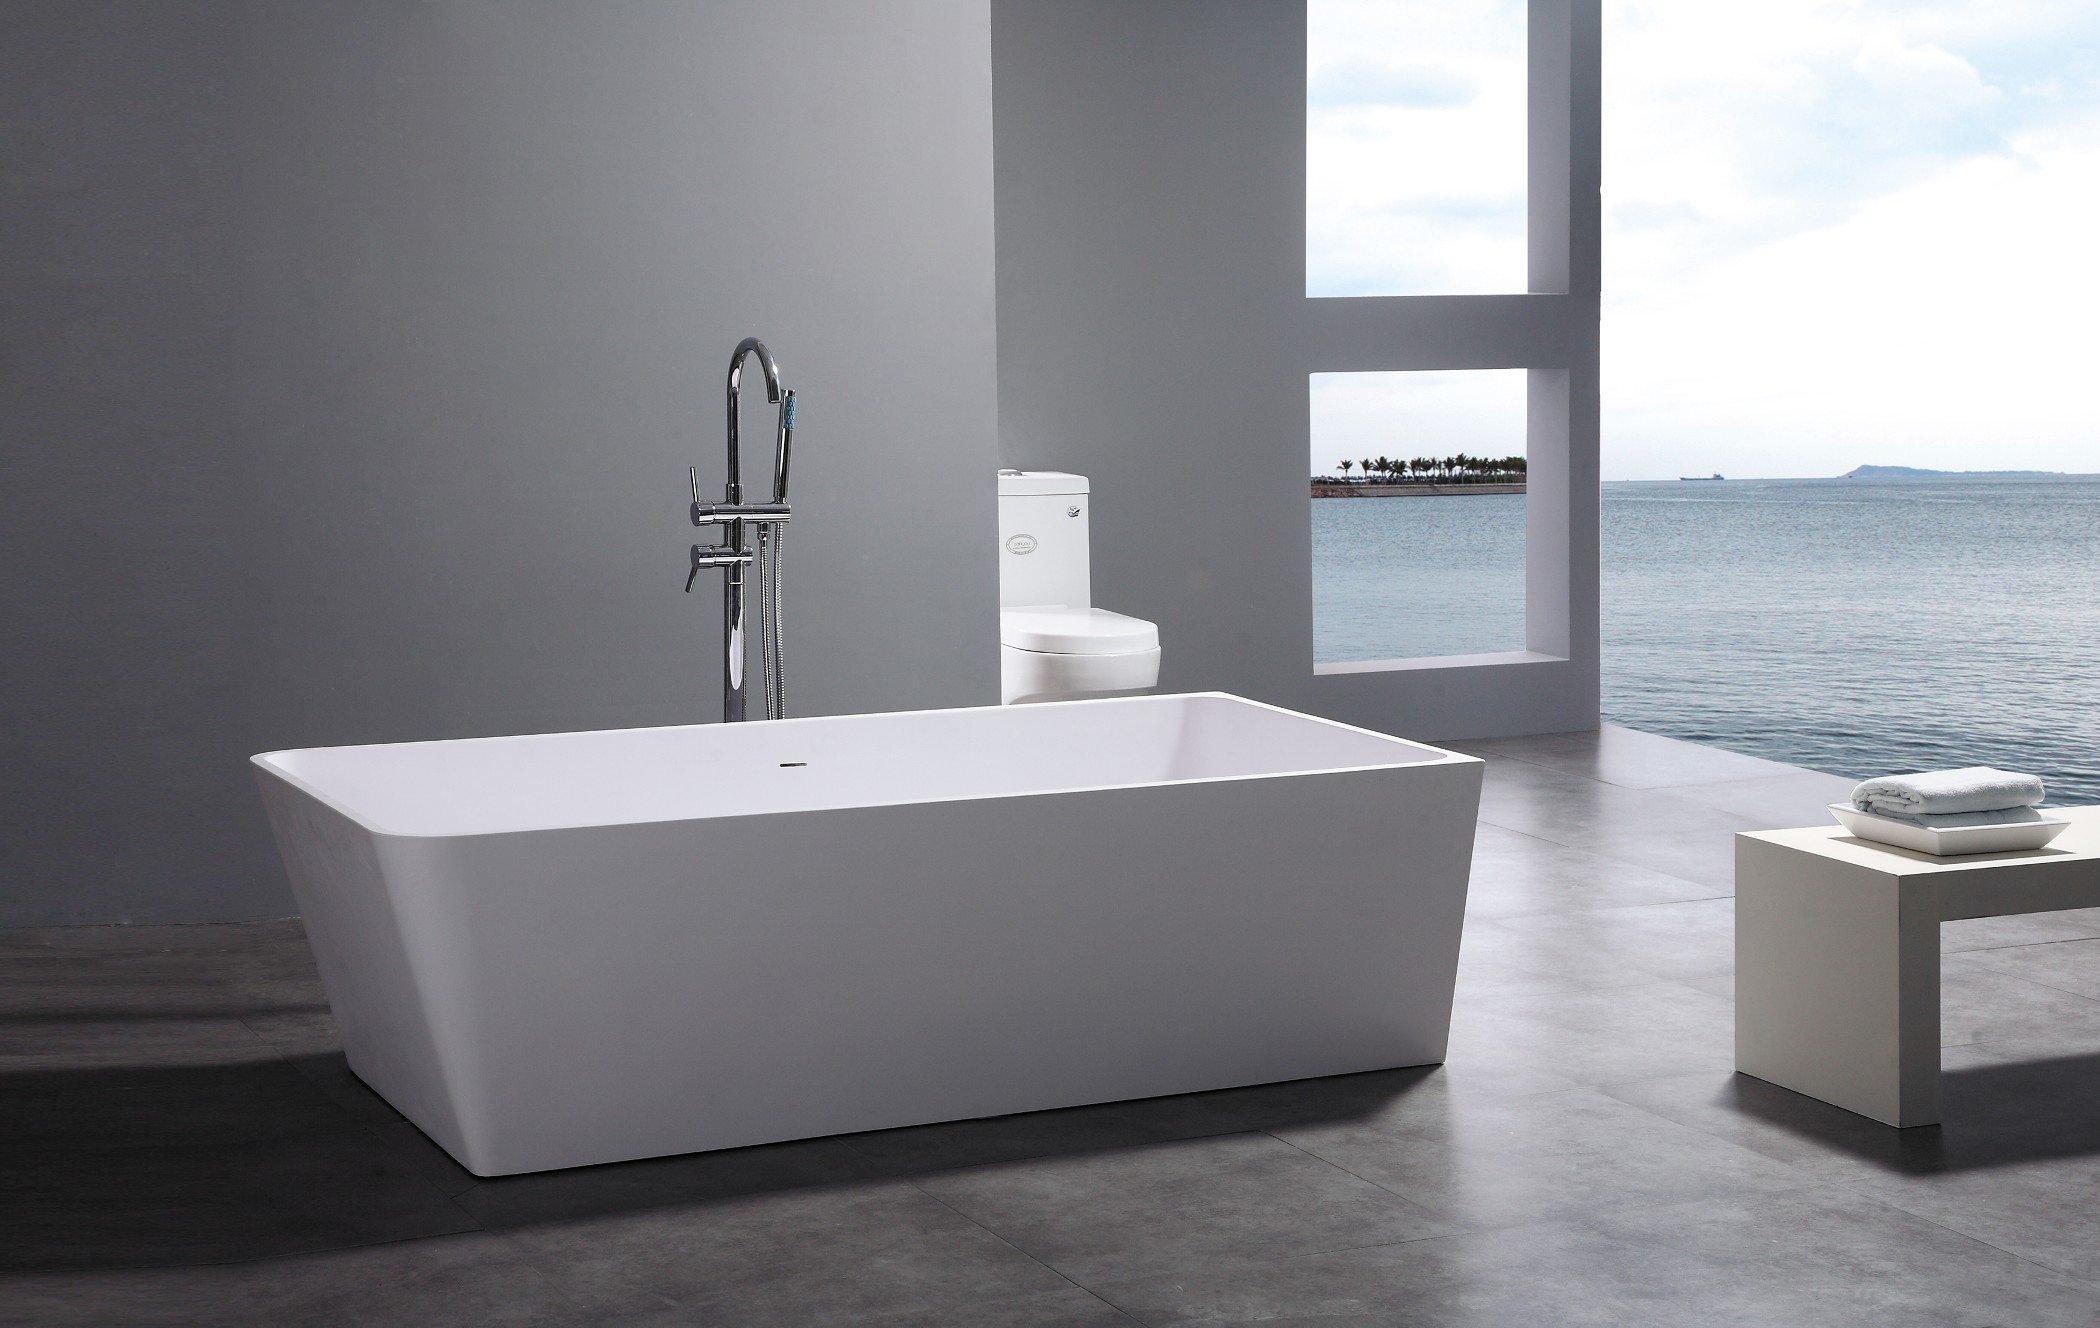 Leona luxury modern bathtub 71 for Bathtub and shower designs